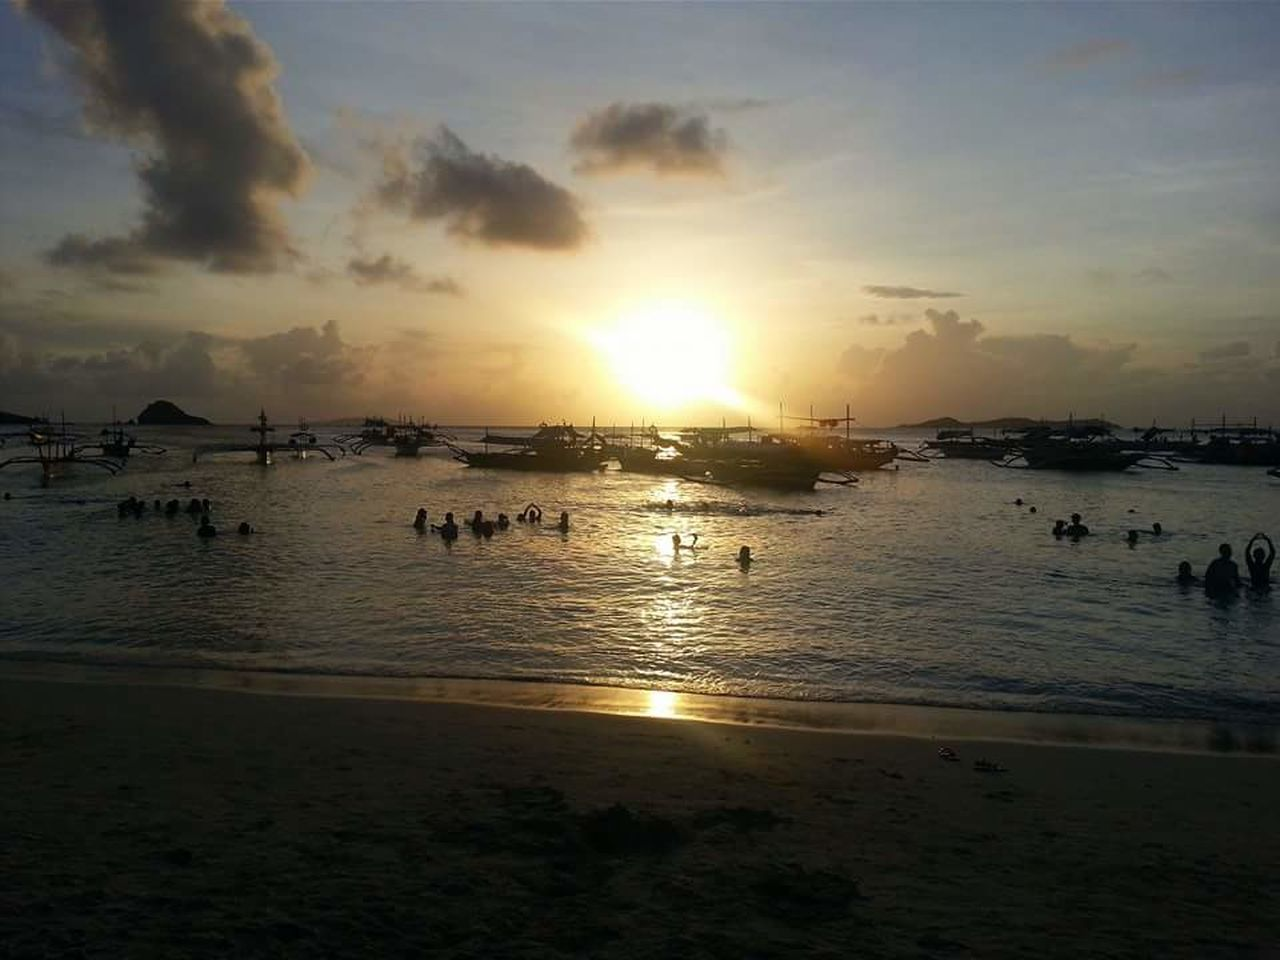 Beach Sea Sunset Vacations Silhouette Nature Beauty In Nature Reflection Sky Sand Summer Horizon Over Water Tranquility Travel Destinations Calaguas Camarinesnorte Philippines EyeEmNewHere